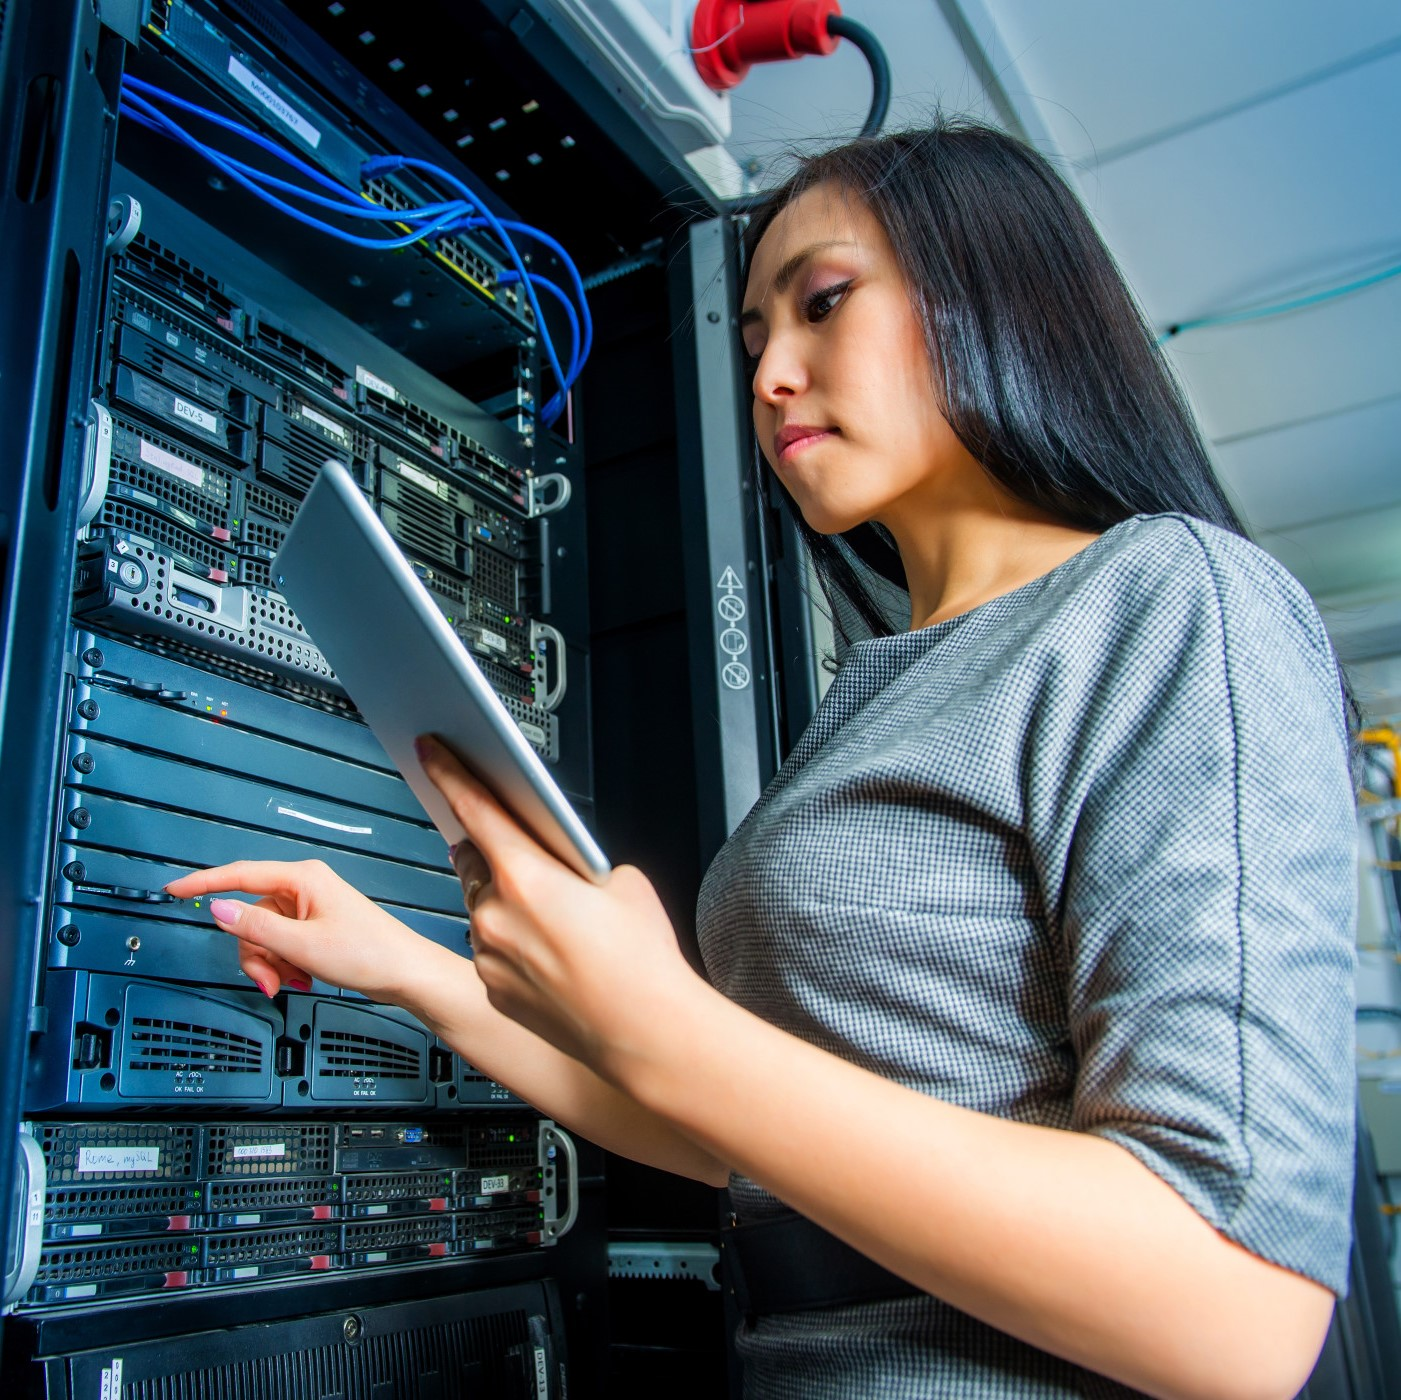 young-engineer-businesswoman-with-tablet-in-network-server-room_t20_RwEAKB